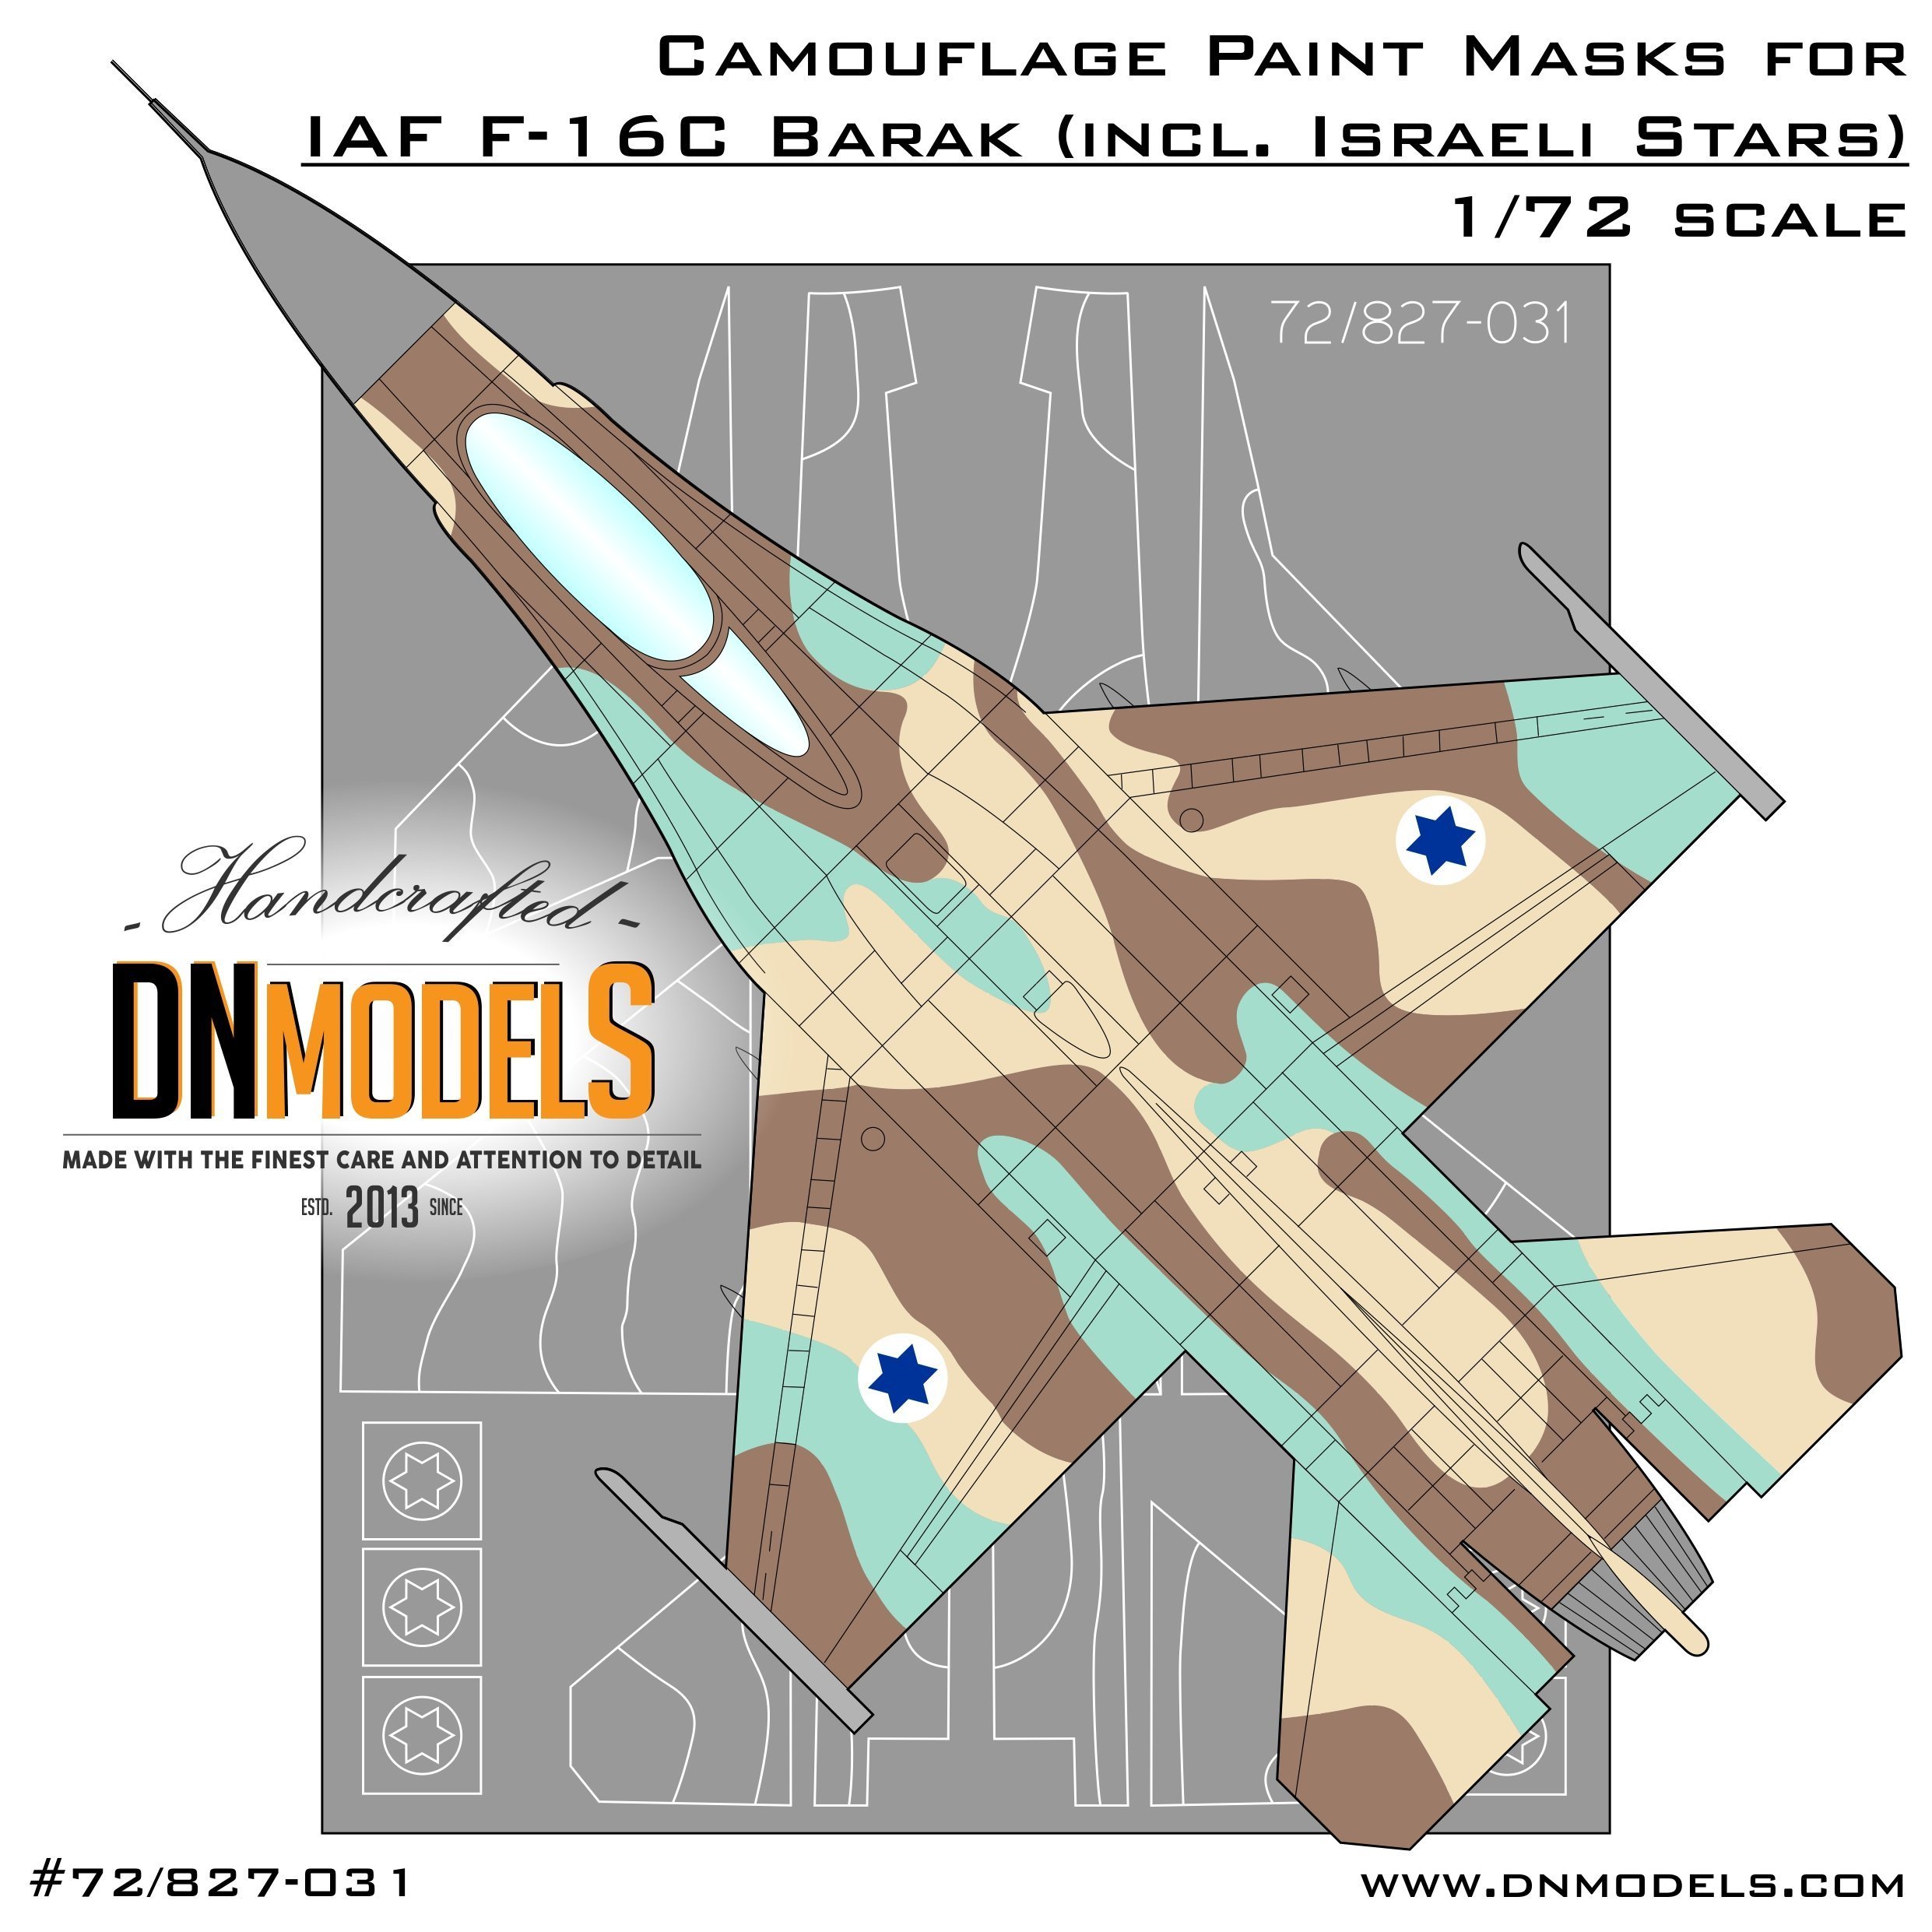 F 16c Barak Israeli Camoflage Scheme Mask Set By Dn Models More than 4,500 units were manufactured and are operated today by 26 countries where the aircraft performs numerous missions that include air superiority, close air support, precision bombing, air defense. dn models